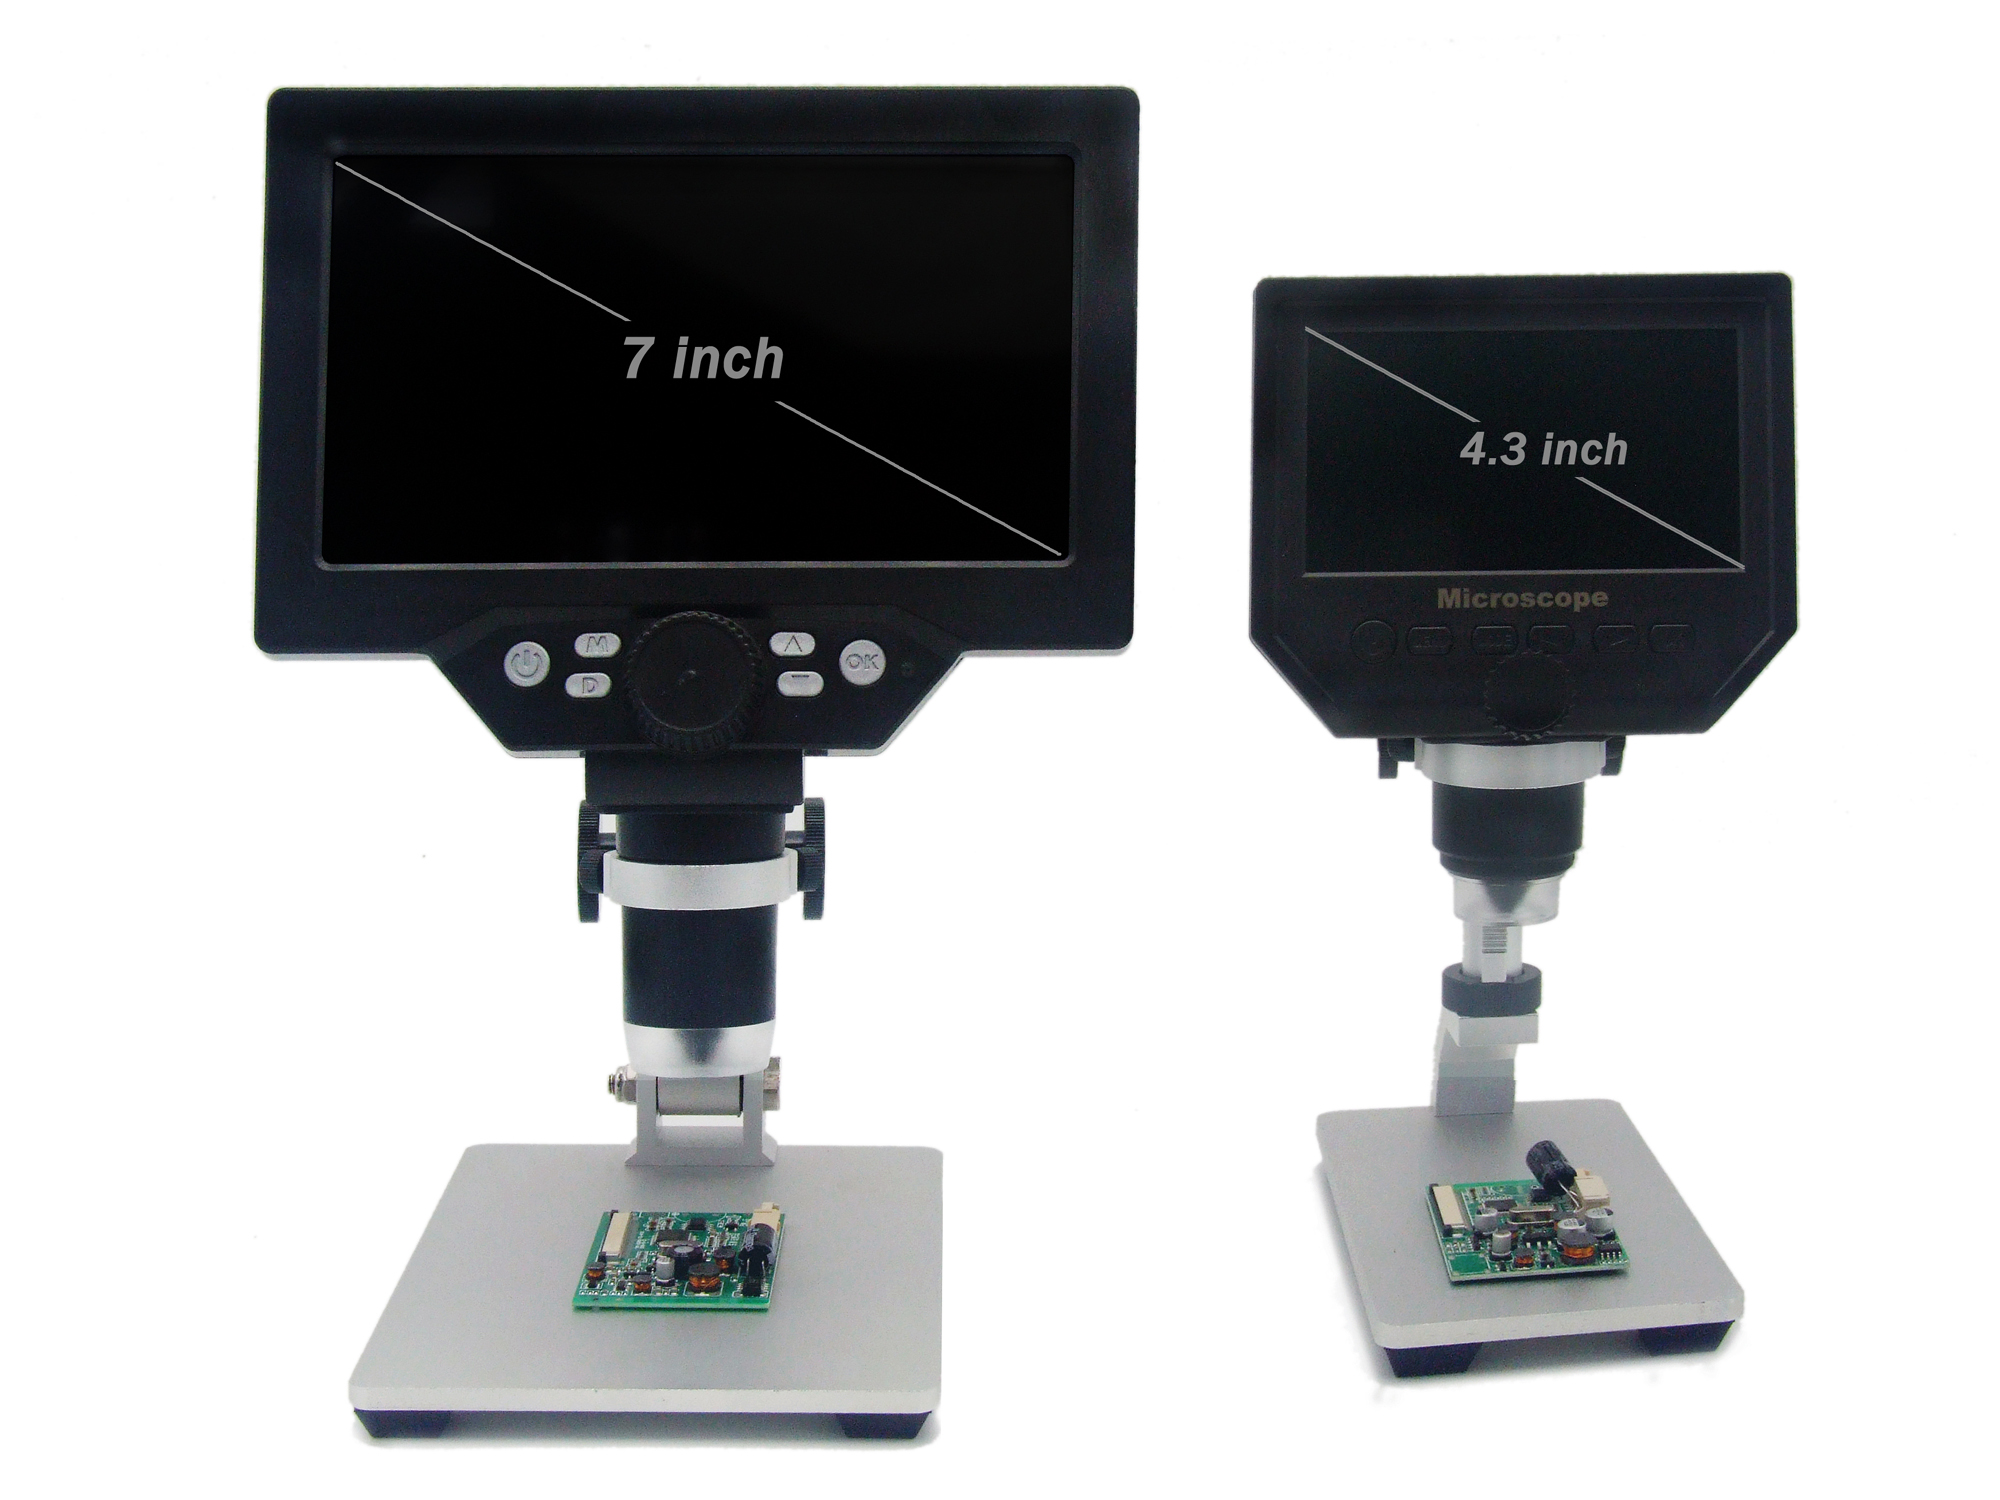 7' HD 12MP 1 1200X LCD Digital Microscope Electronic Video Microscopes Pcb BGA SMT Soldering Phone Repair Magnifier Alloy Stand - 5